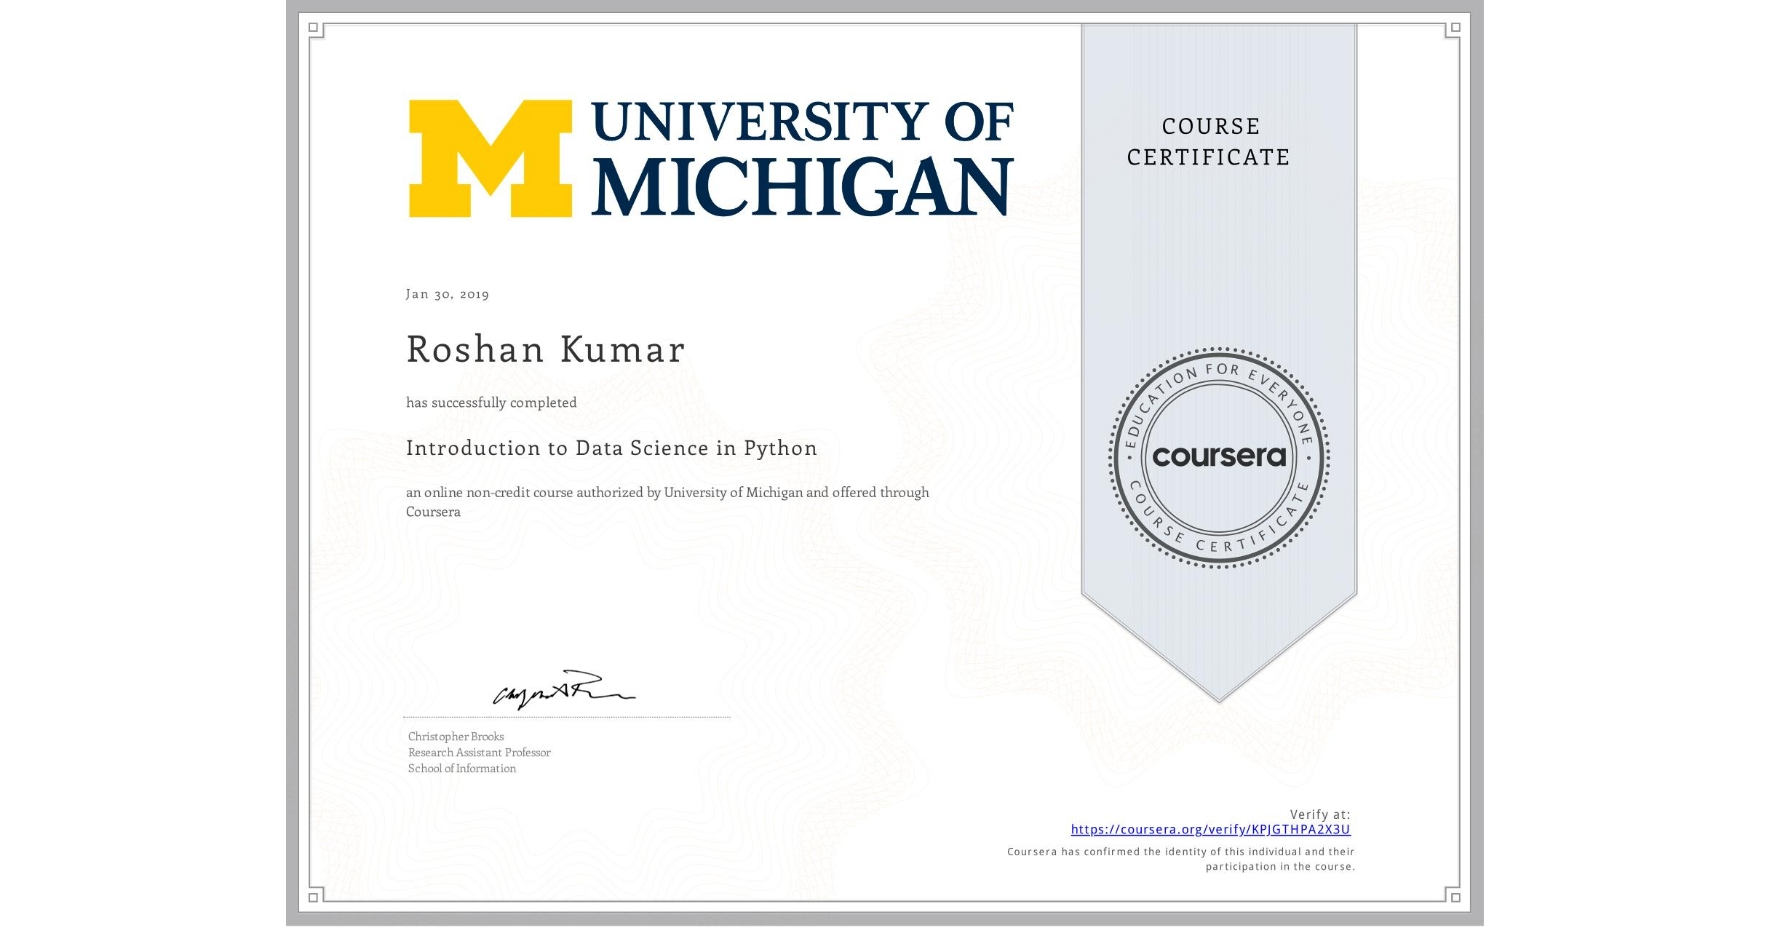 View certificate for Roshan Kumar, Introduction to Data Science in Python, an online non-credit course authorized by University of Michigan and offered through Coursera